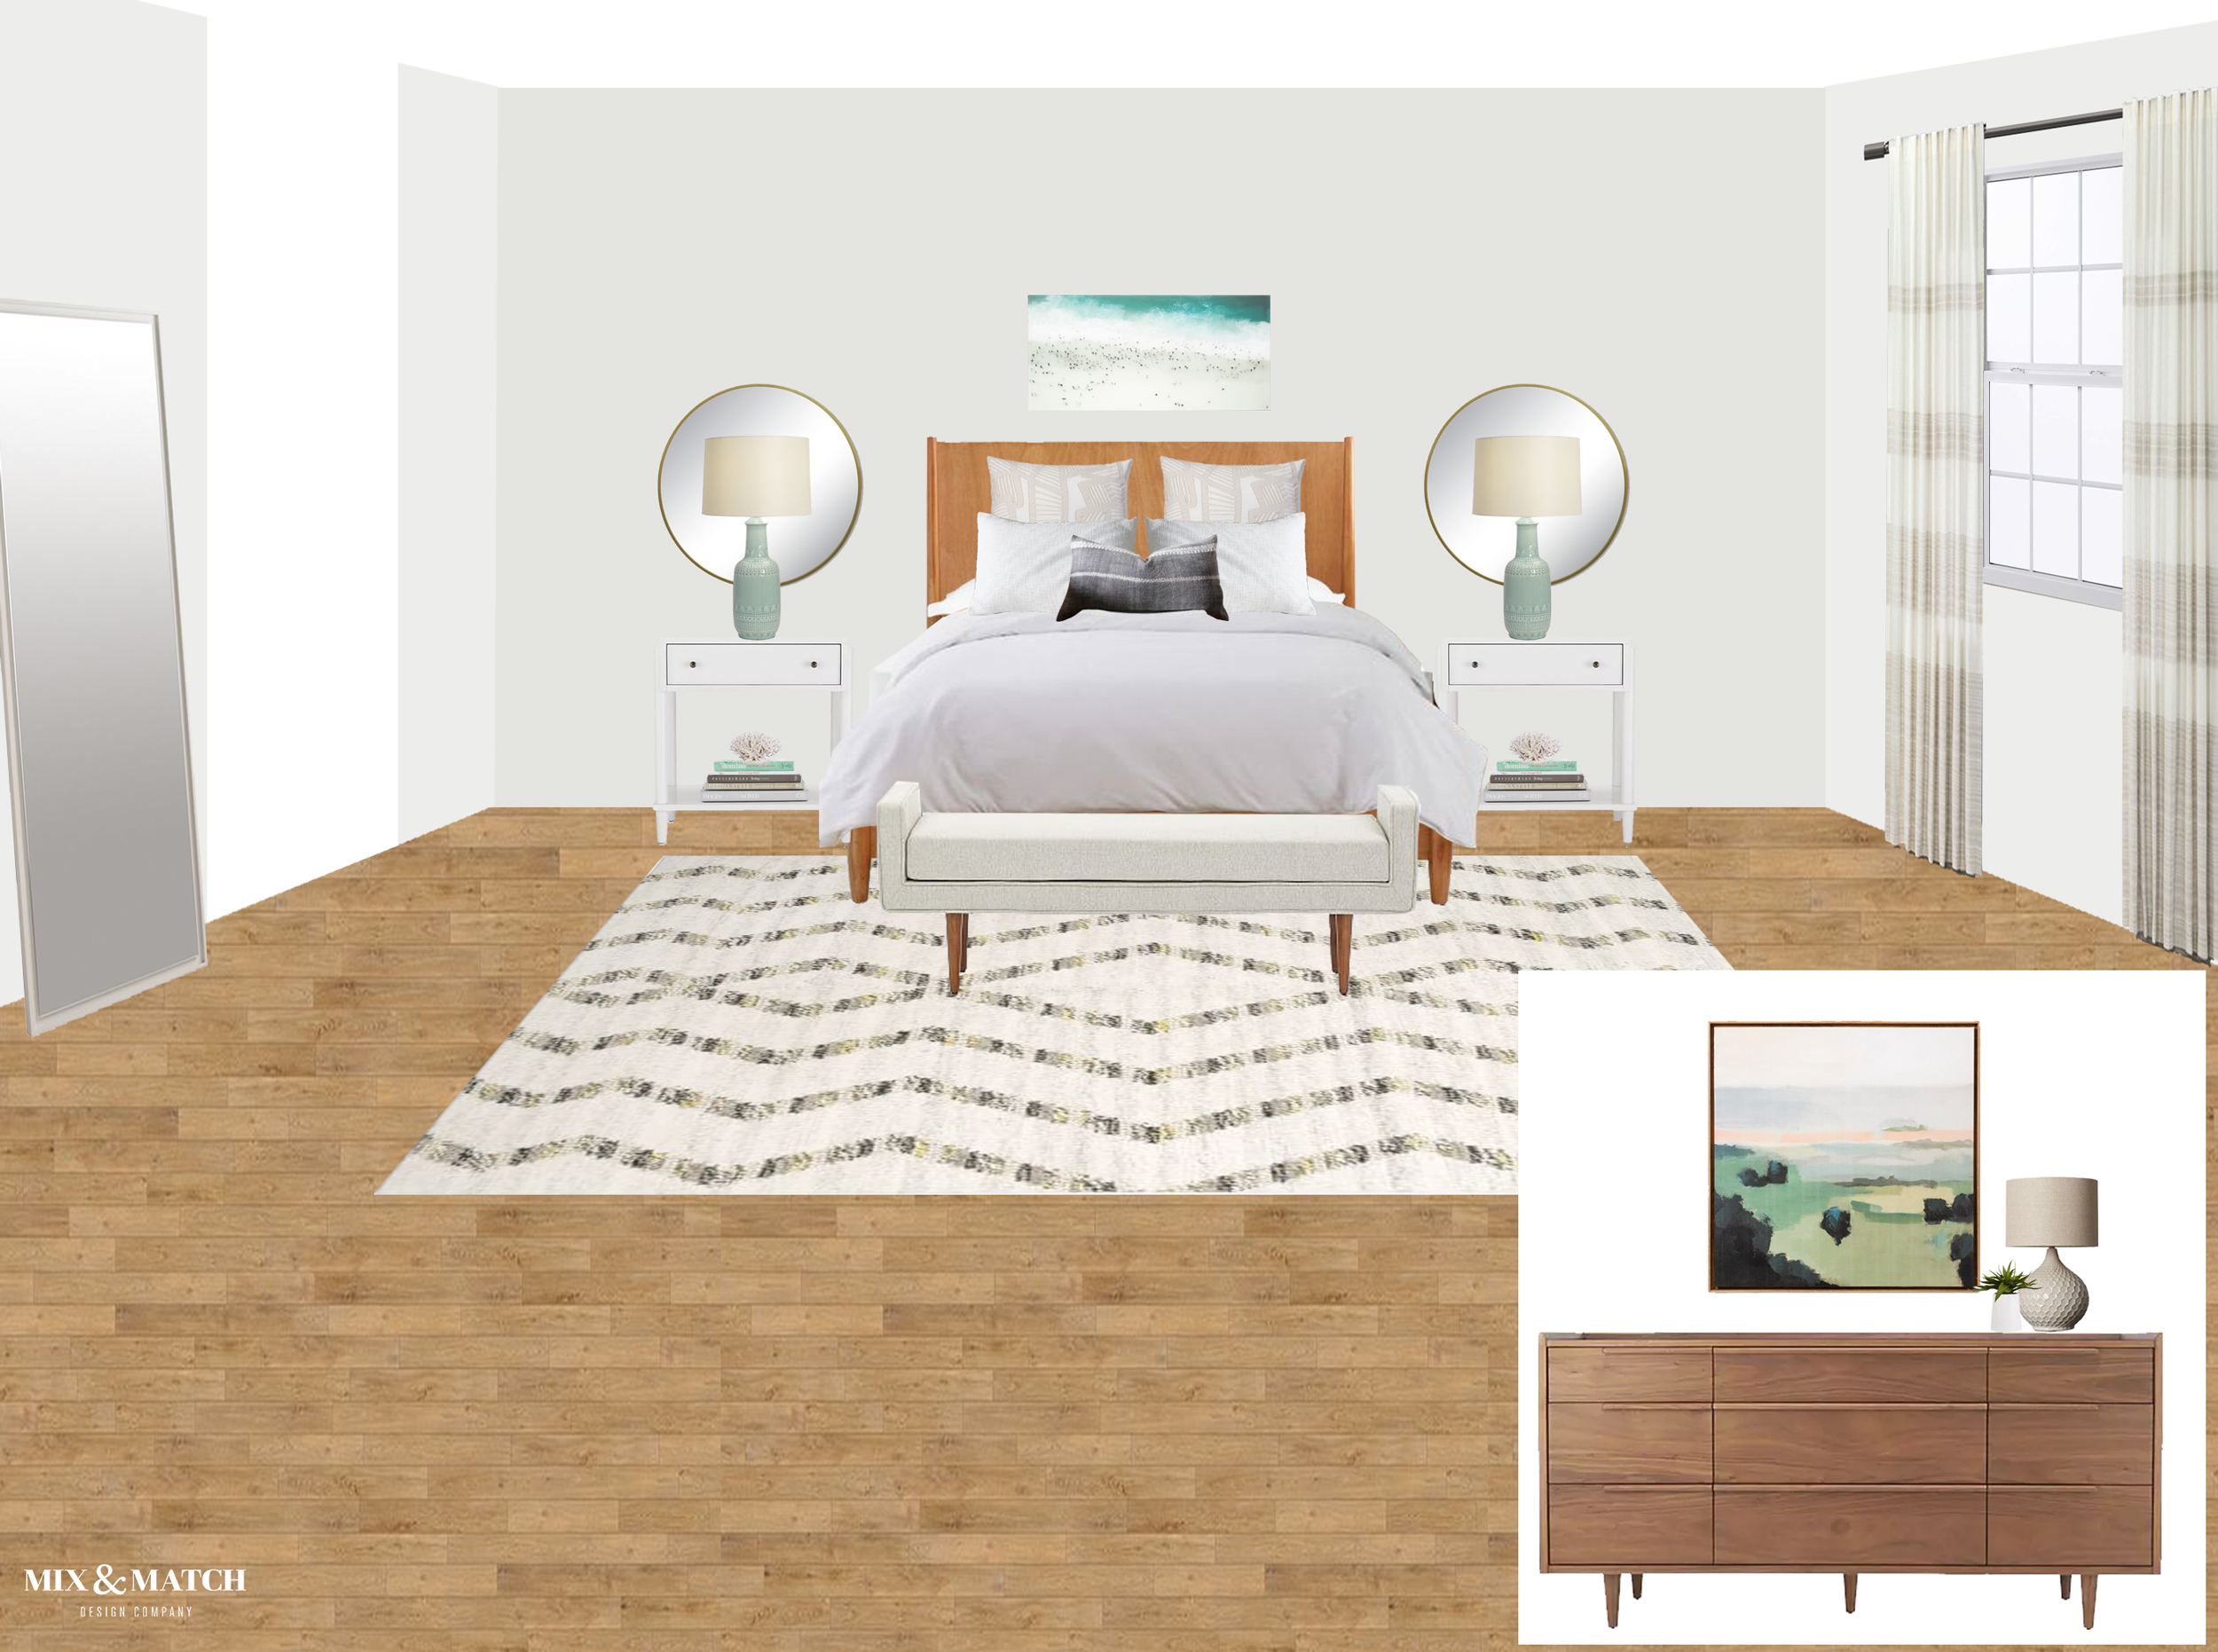 A modern eclectic master bedroom design board from Mix & Match Design Company. The mid-century modern furniture feels cozy and warm next to the light and neutral tones in the rest of the space.